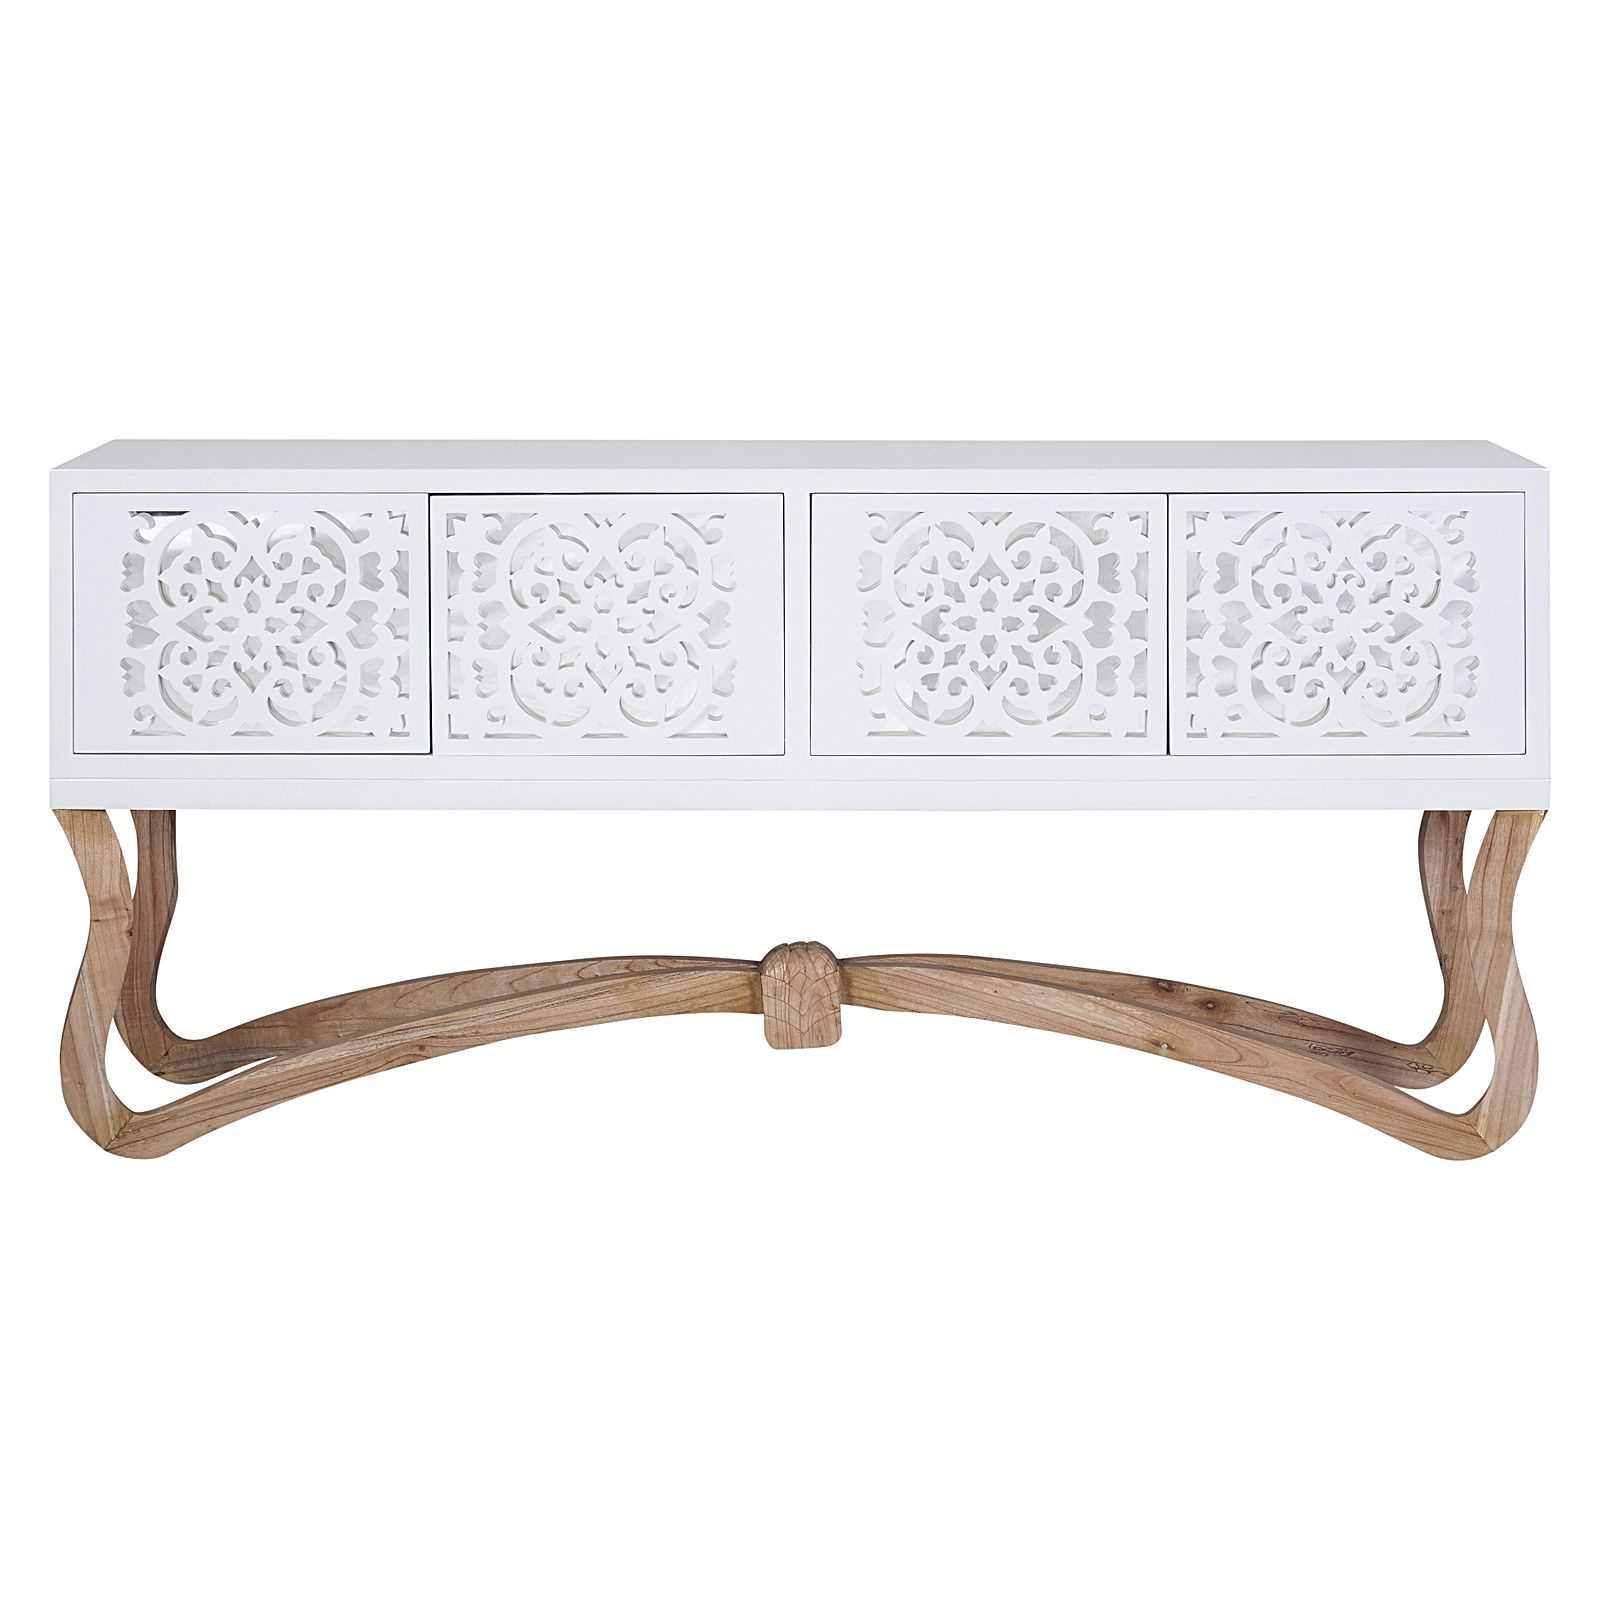 Sienna Sideboard, White, Large Regarding Sienna Sideboards (View 12 of 20)